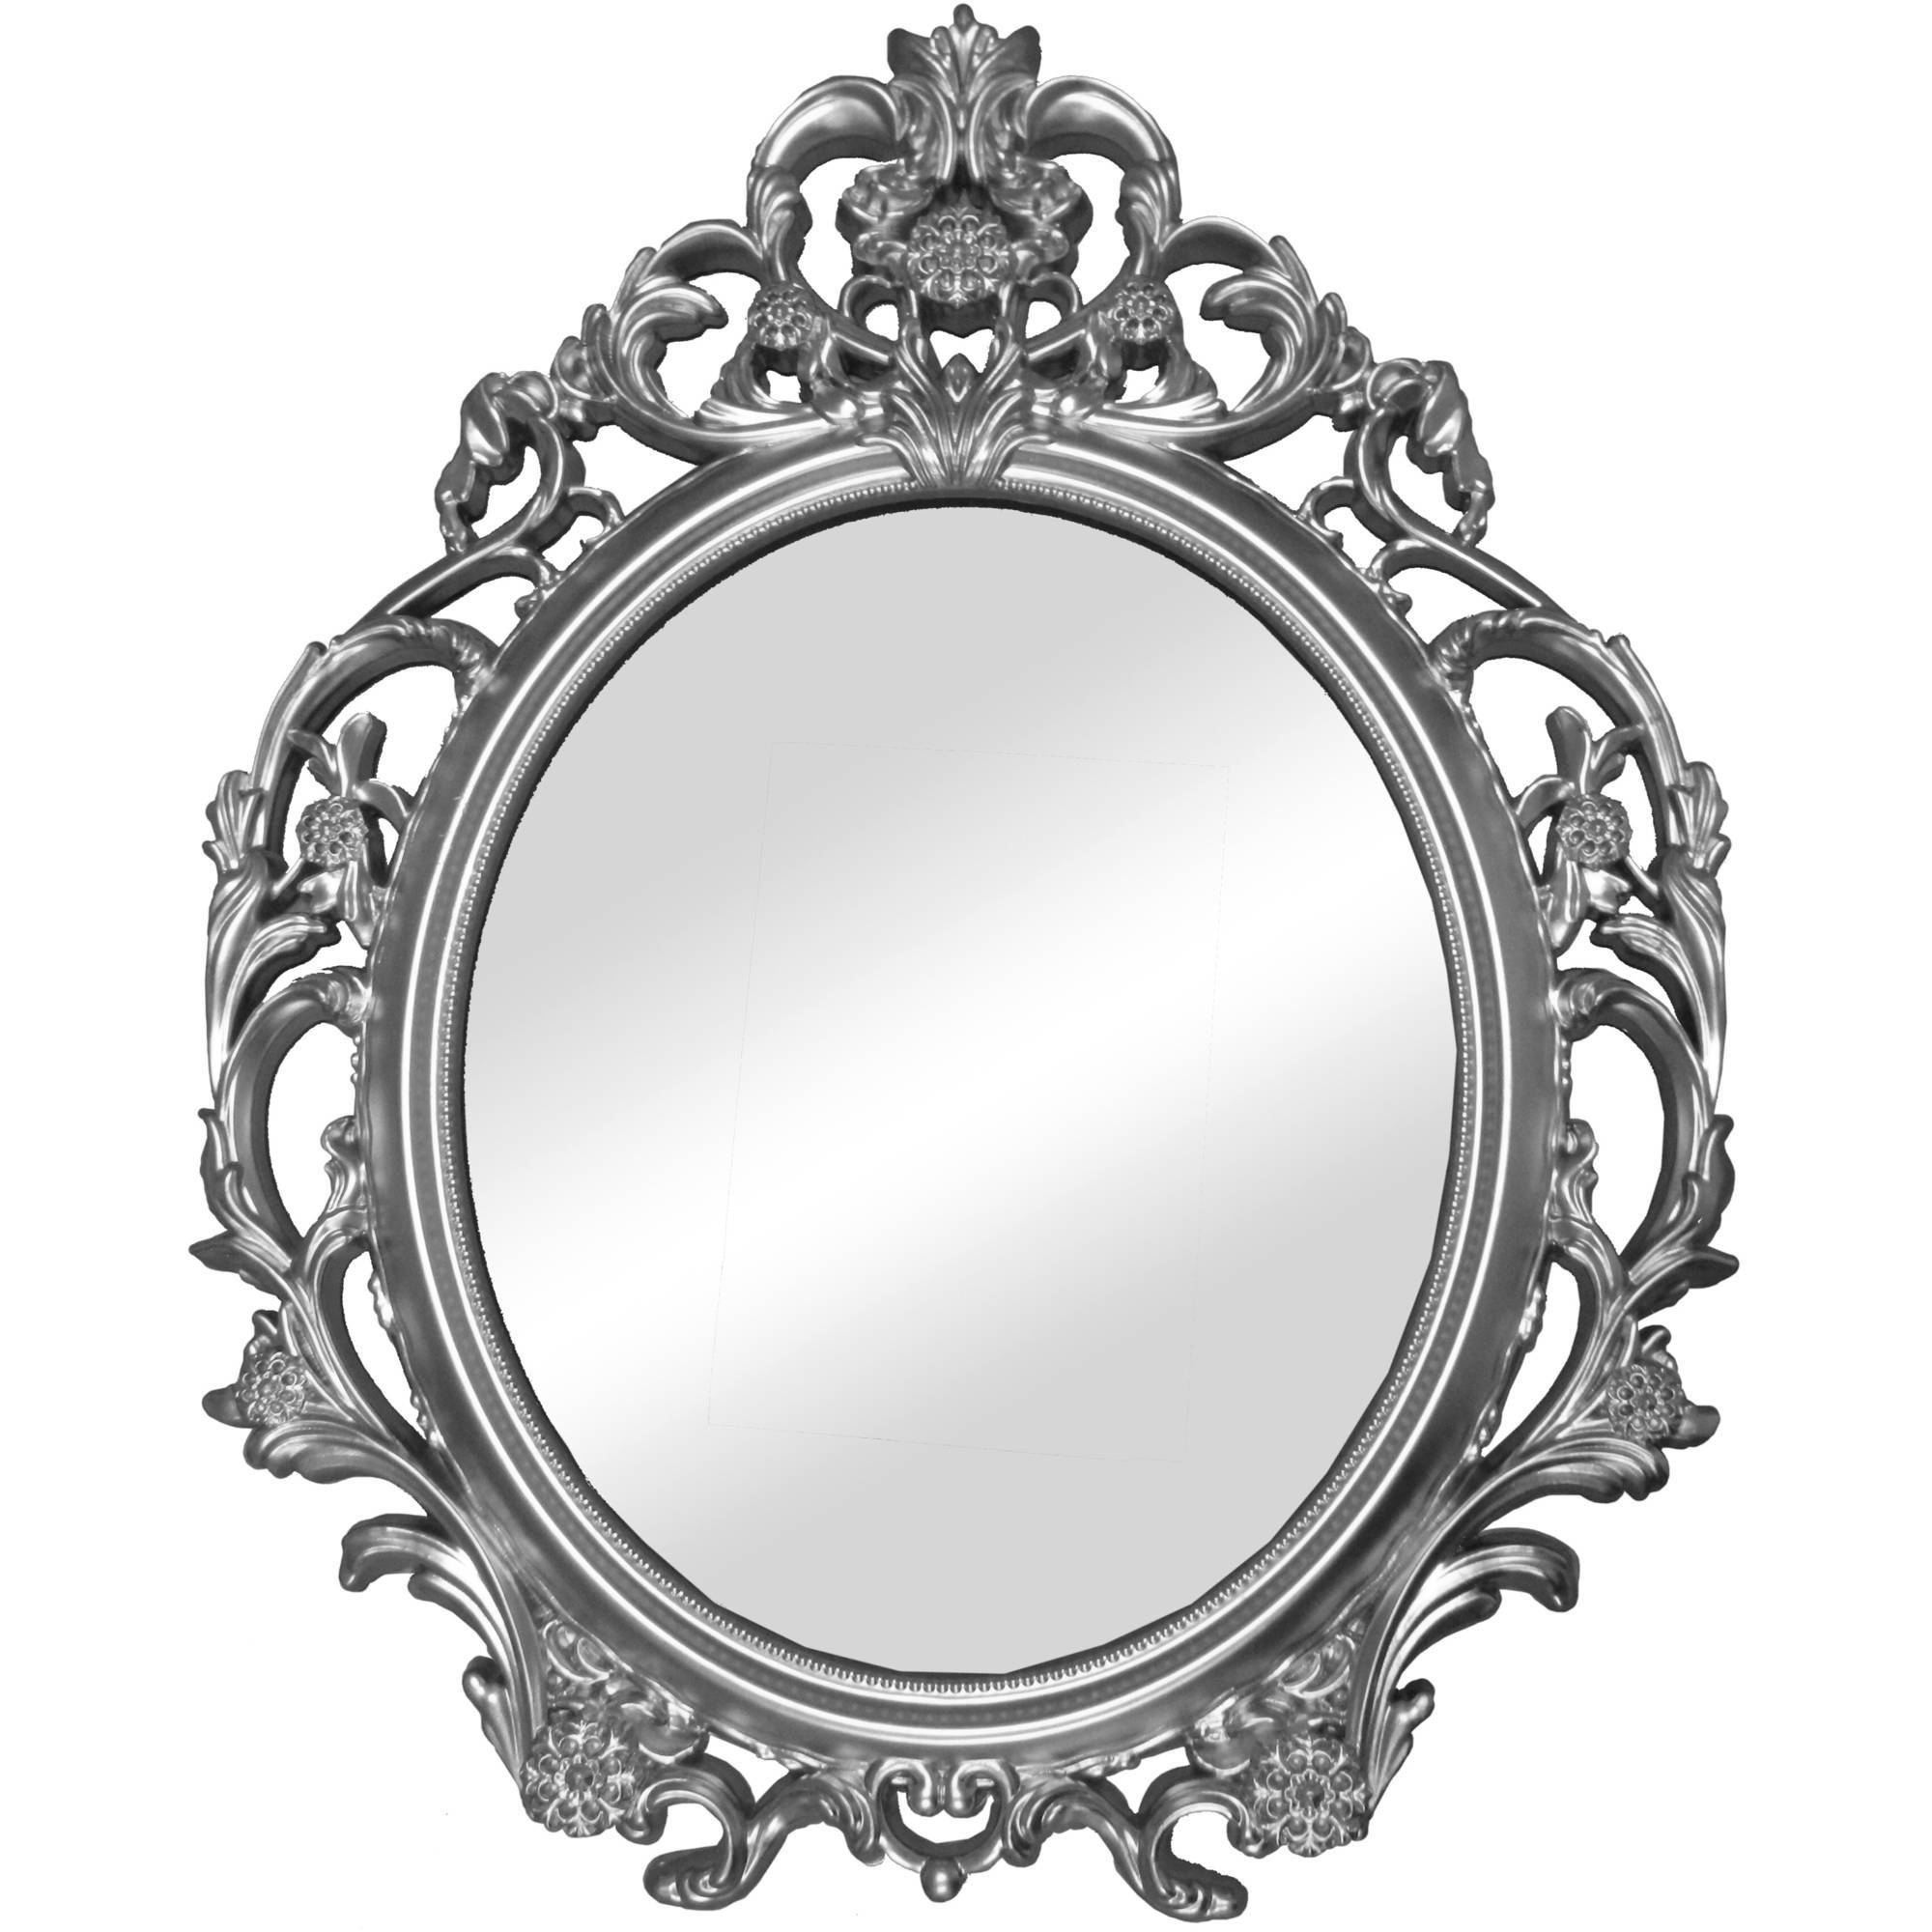 Better Homes And Gardens Baroque Wall Mirror - Walmart inside Black Baroque Mirrors (Image 10 of 25)